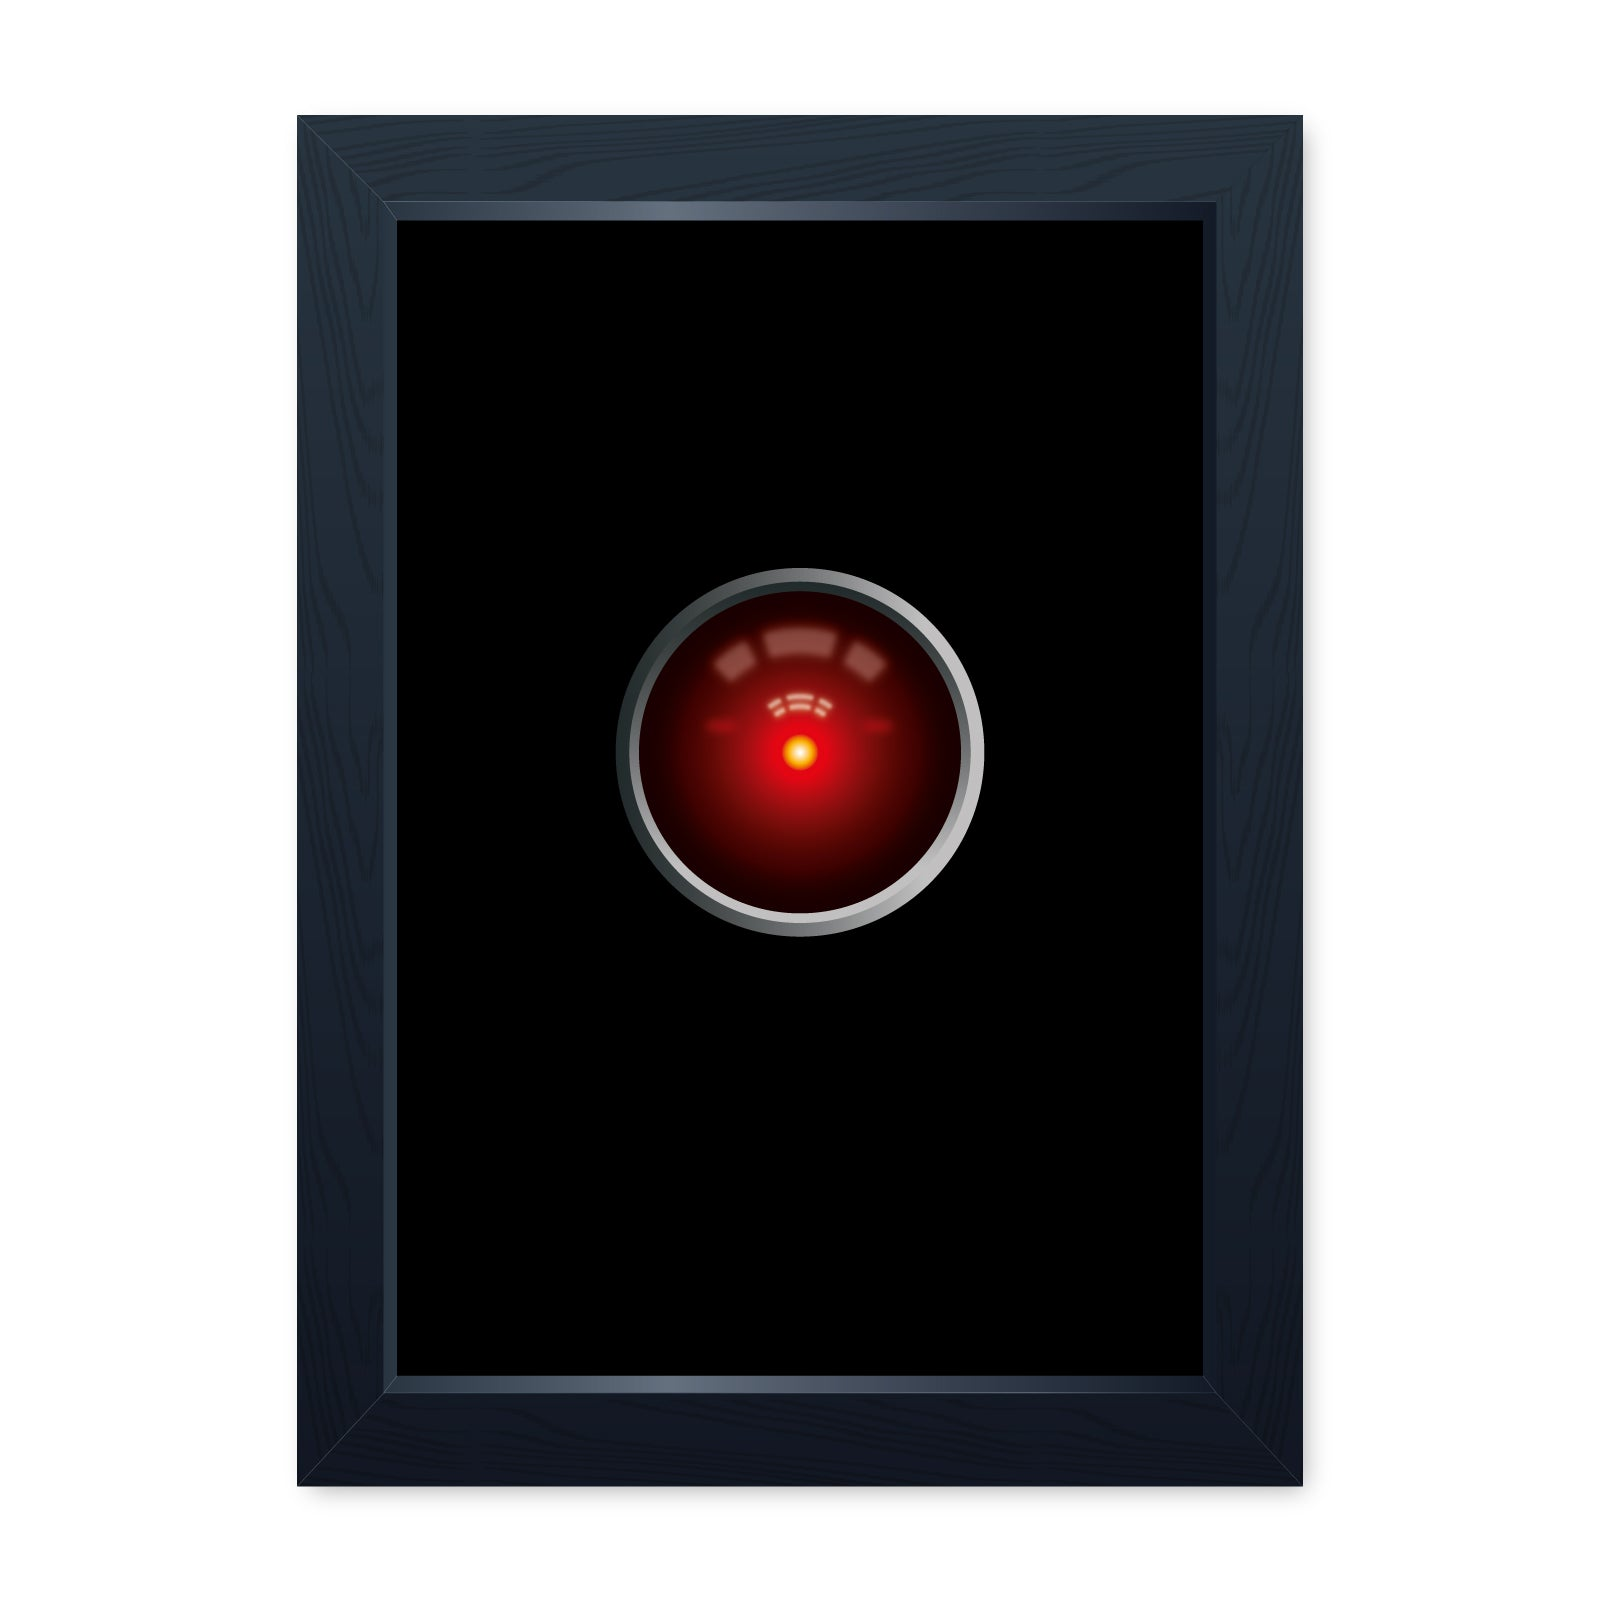 HAL Eye, Sci-Fi Movie Inspired Quality Framed Print - Cinema Room Man Cave Art Wall Art